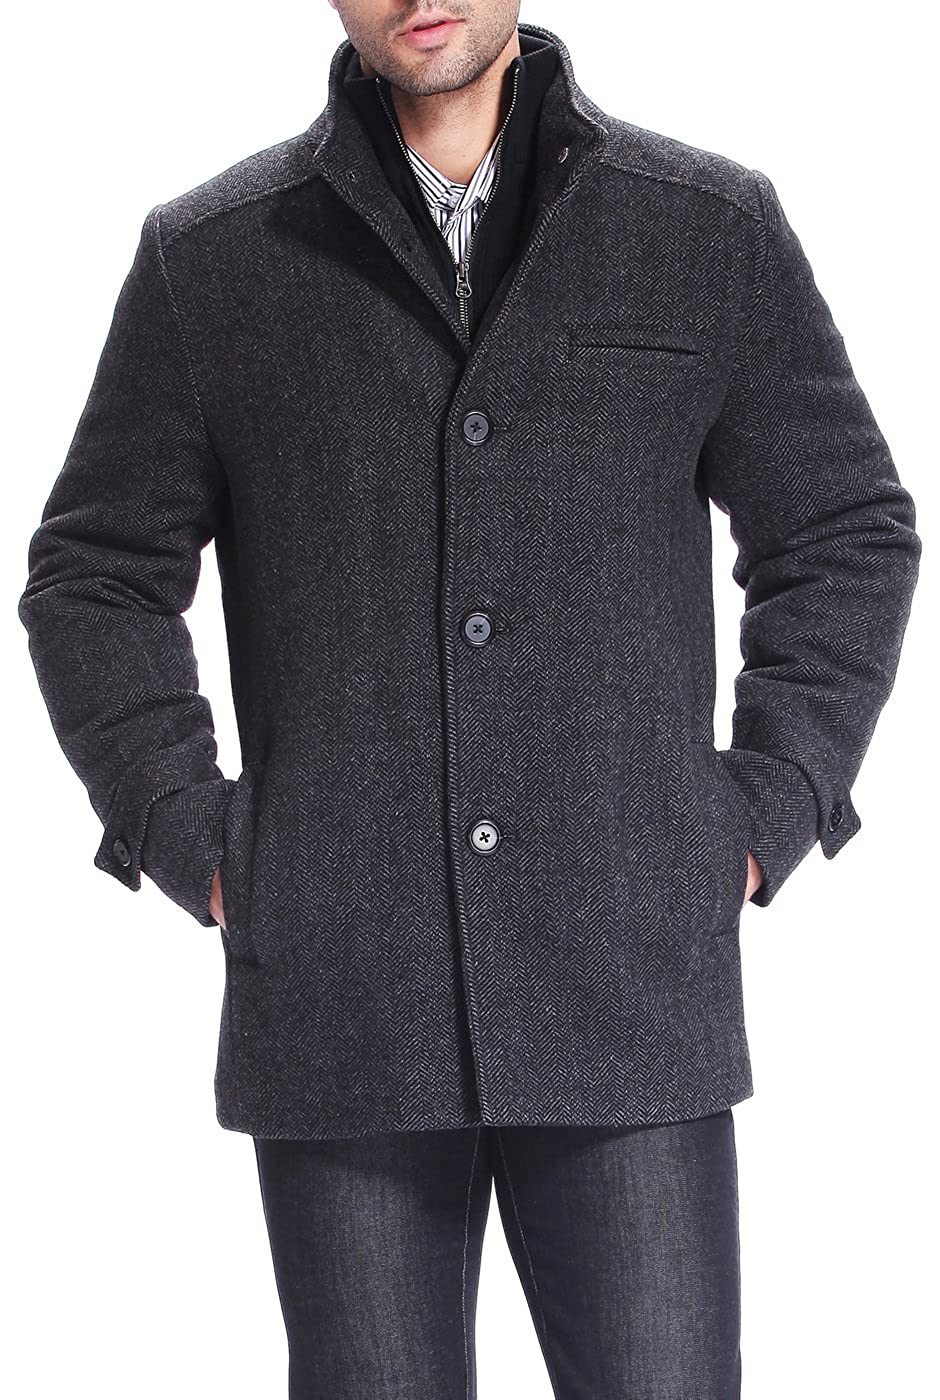 BGSD Men's 'Samuel' Herringbone Wool Blend Bibbed Car Coat